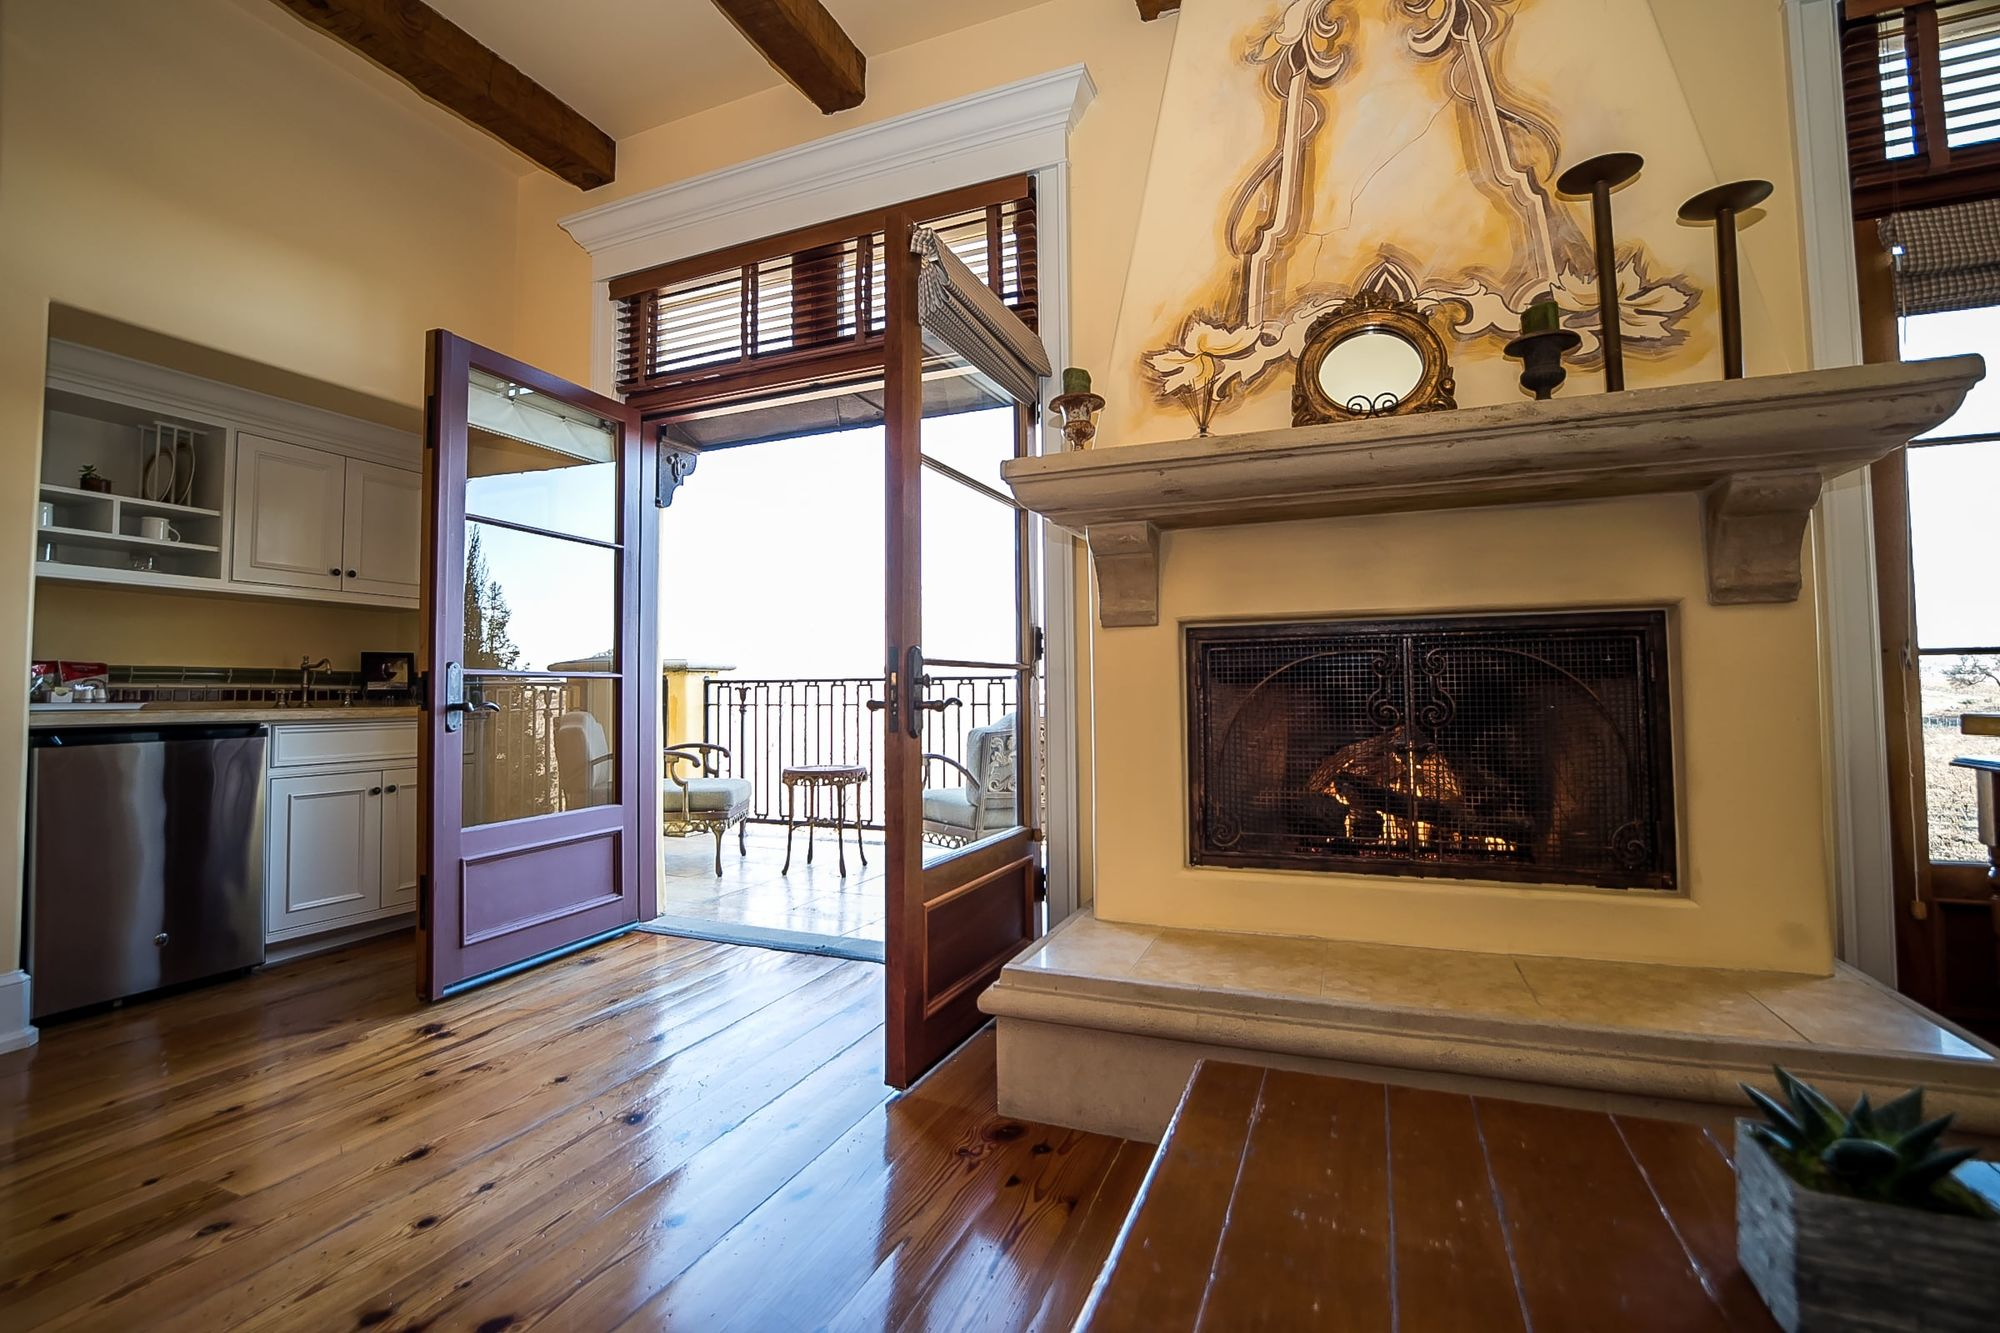 Decorative fireplace with French doors open to the patio to the left and the wet bar behind the door